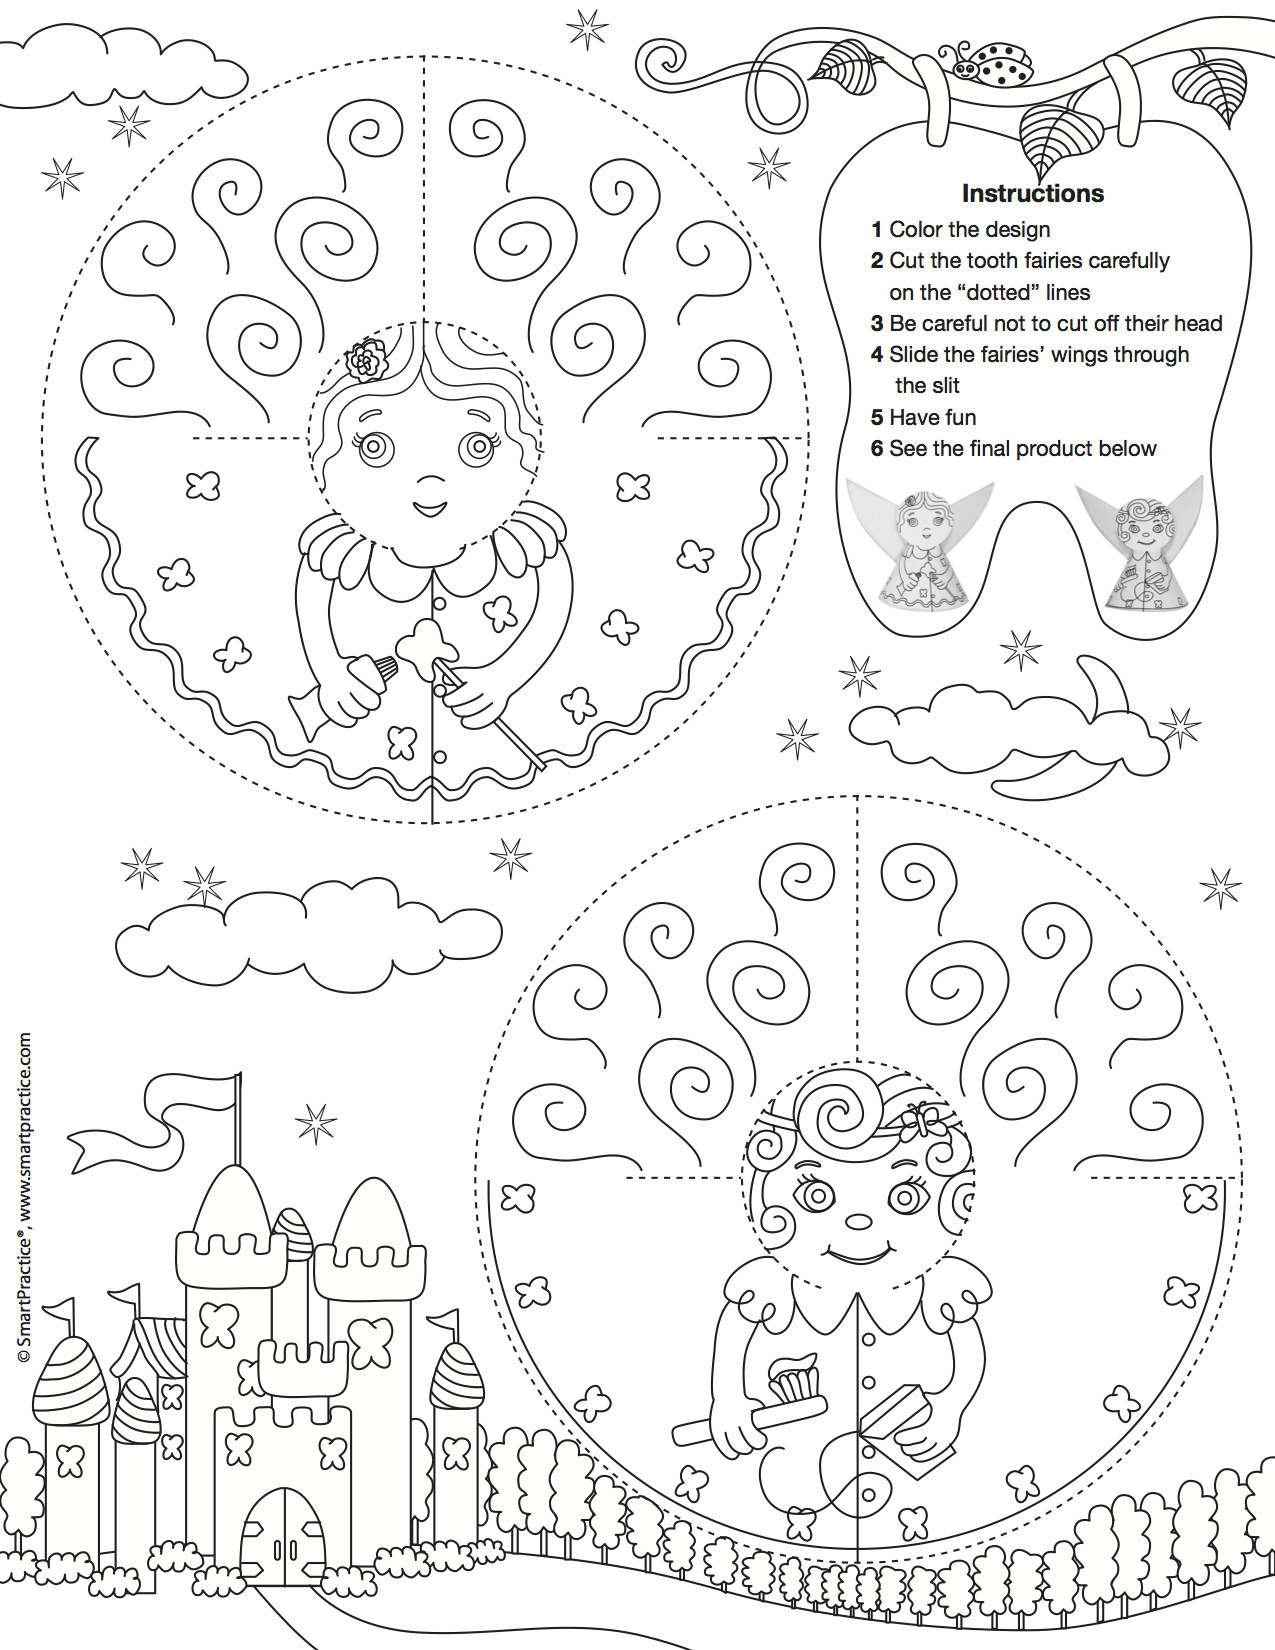 A tooth fairy coloring sheet.